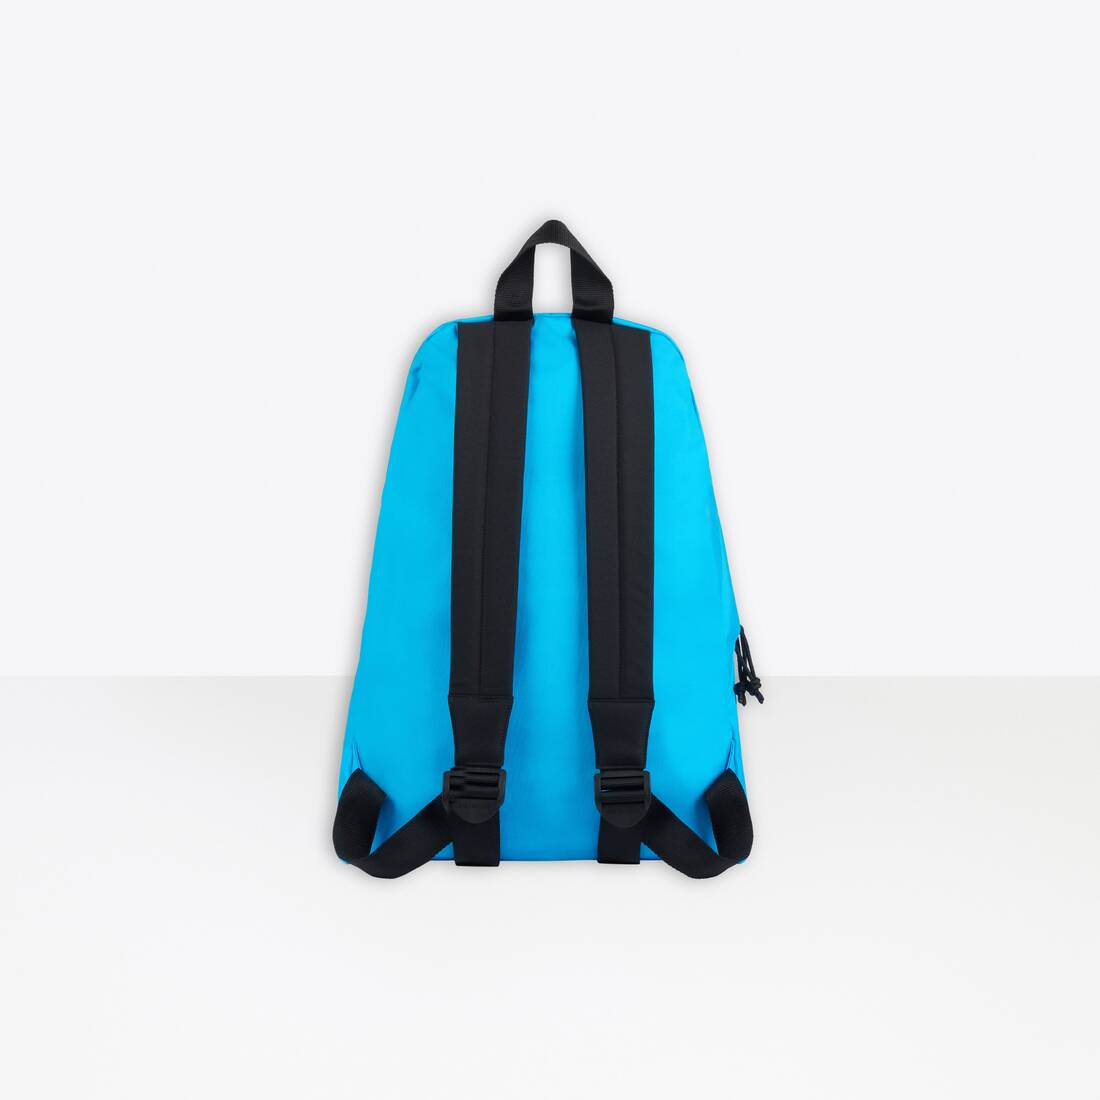 Display zoomed version of oversized xxl backpack 2